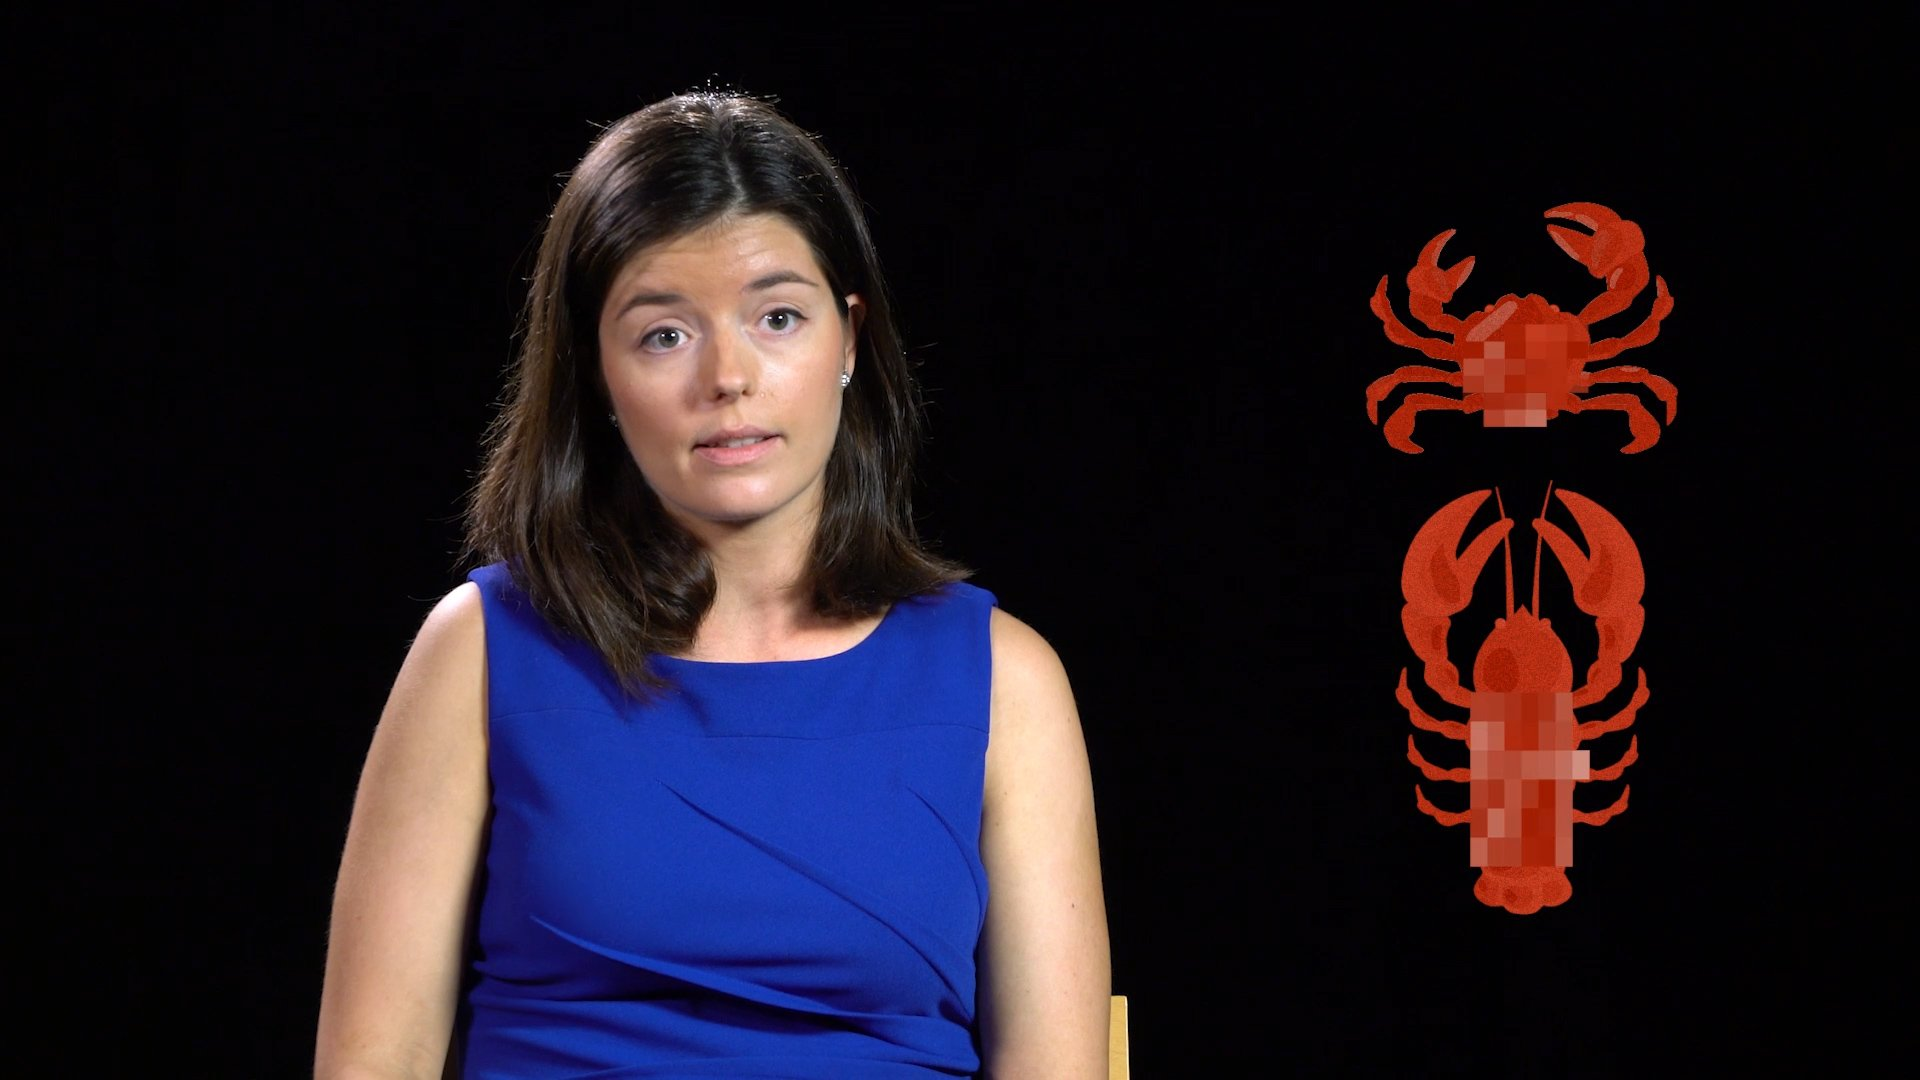 The connection between dissolving crab shells, Lyme disease and a toxic lake https://t.co/kEDE394TTg https://t.co/l6fDrmC0nK